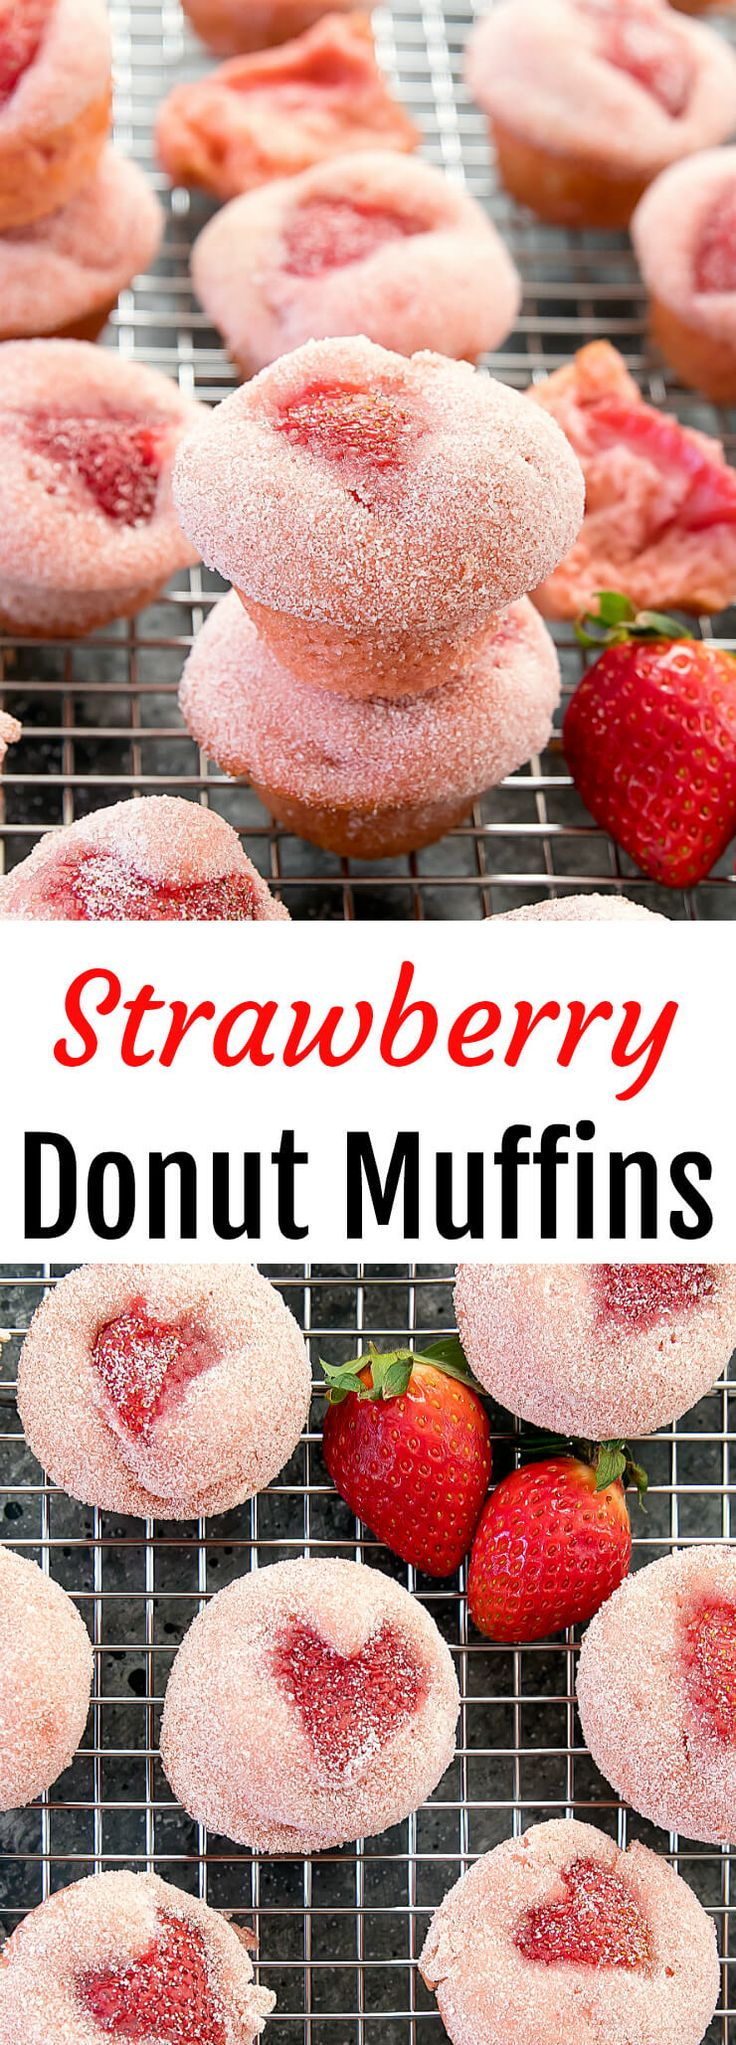 Strawberry Donut Muffins. Light and fluffy with a mild strawberry flavor. Perfect for Valentine's Day!